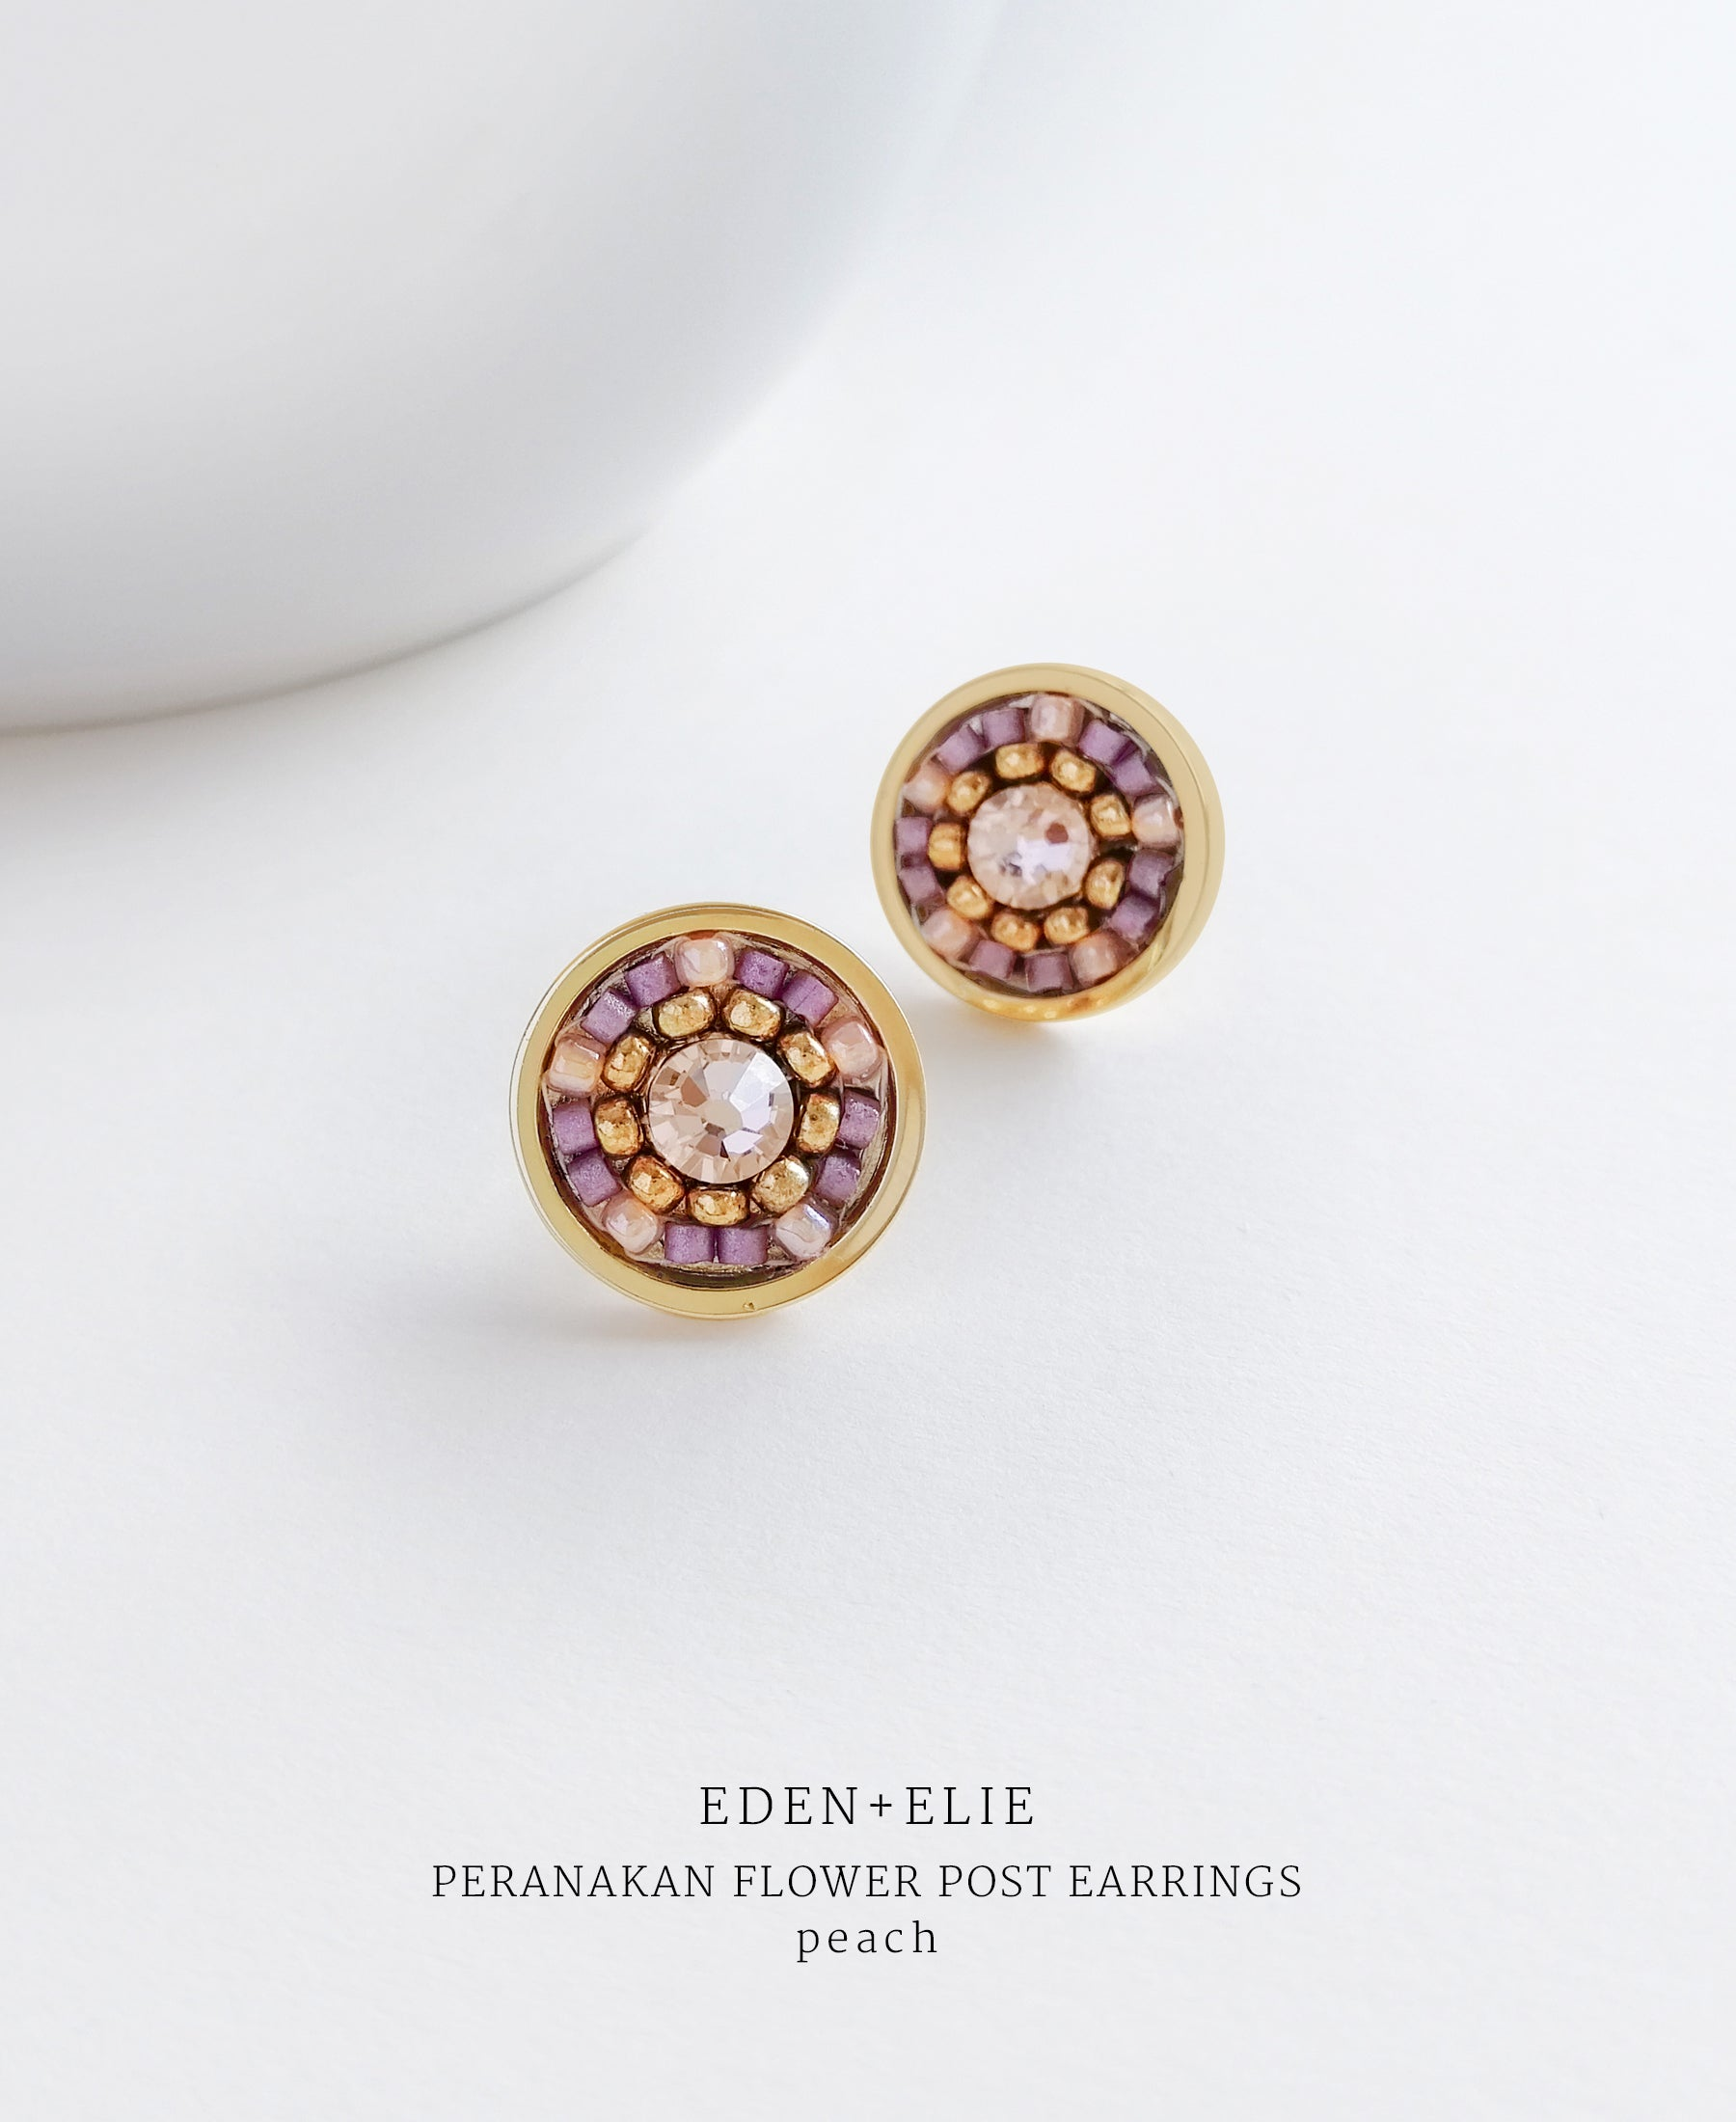 EDEN + ELIE gold plated jewelry Modern Peranakan flower stud earrings - peach